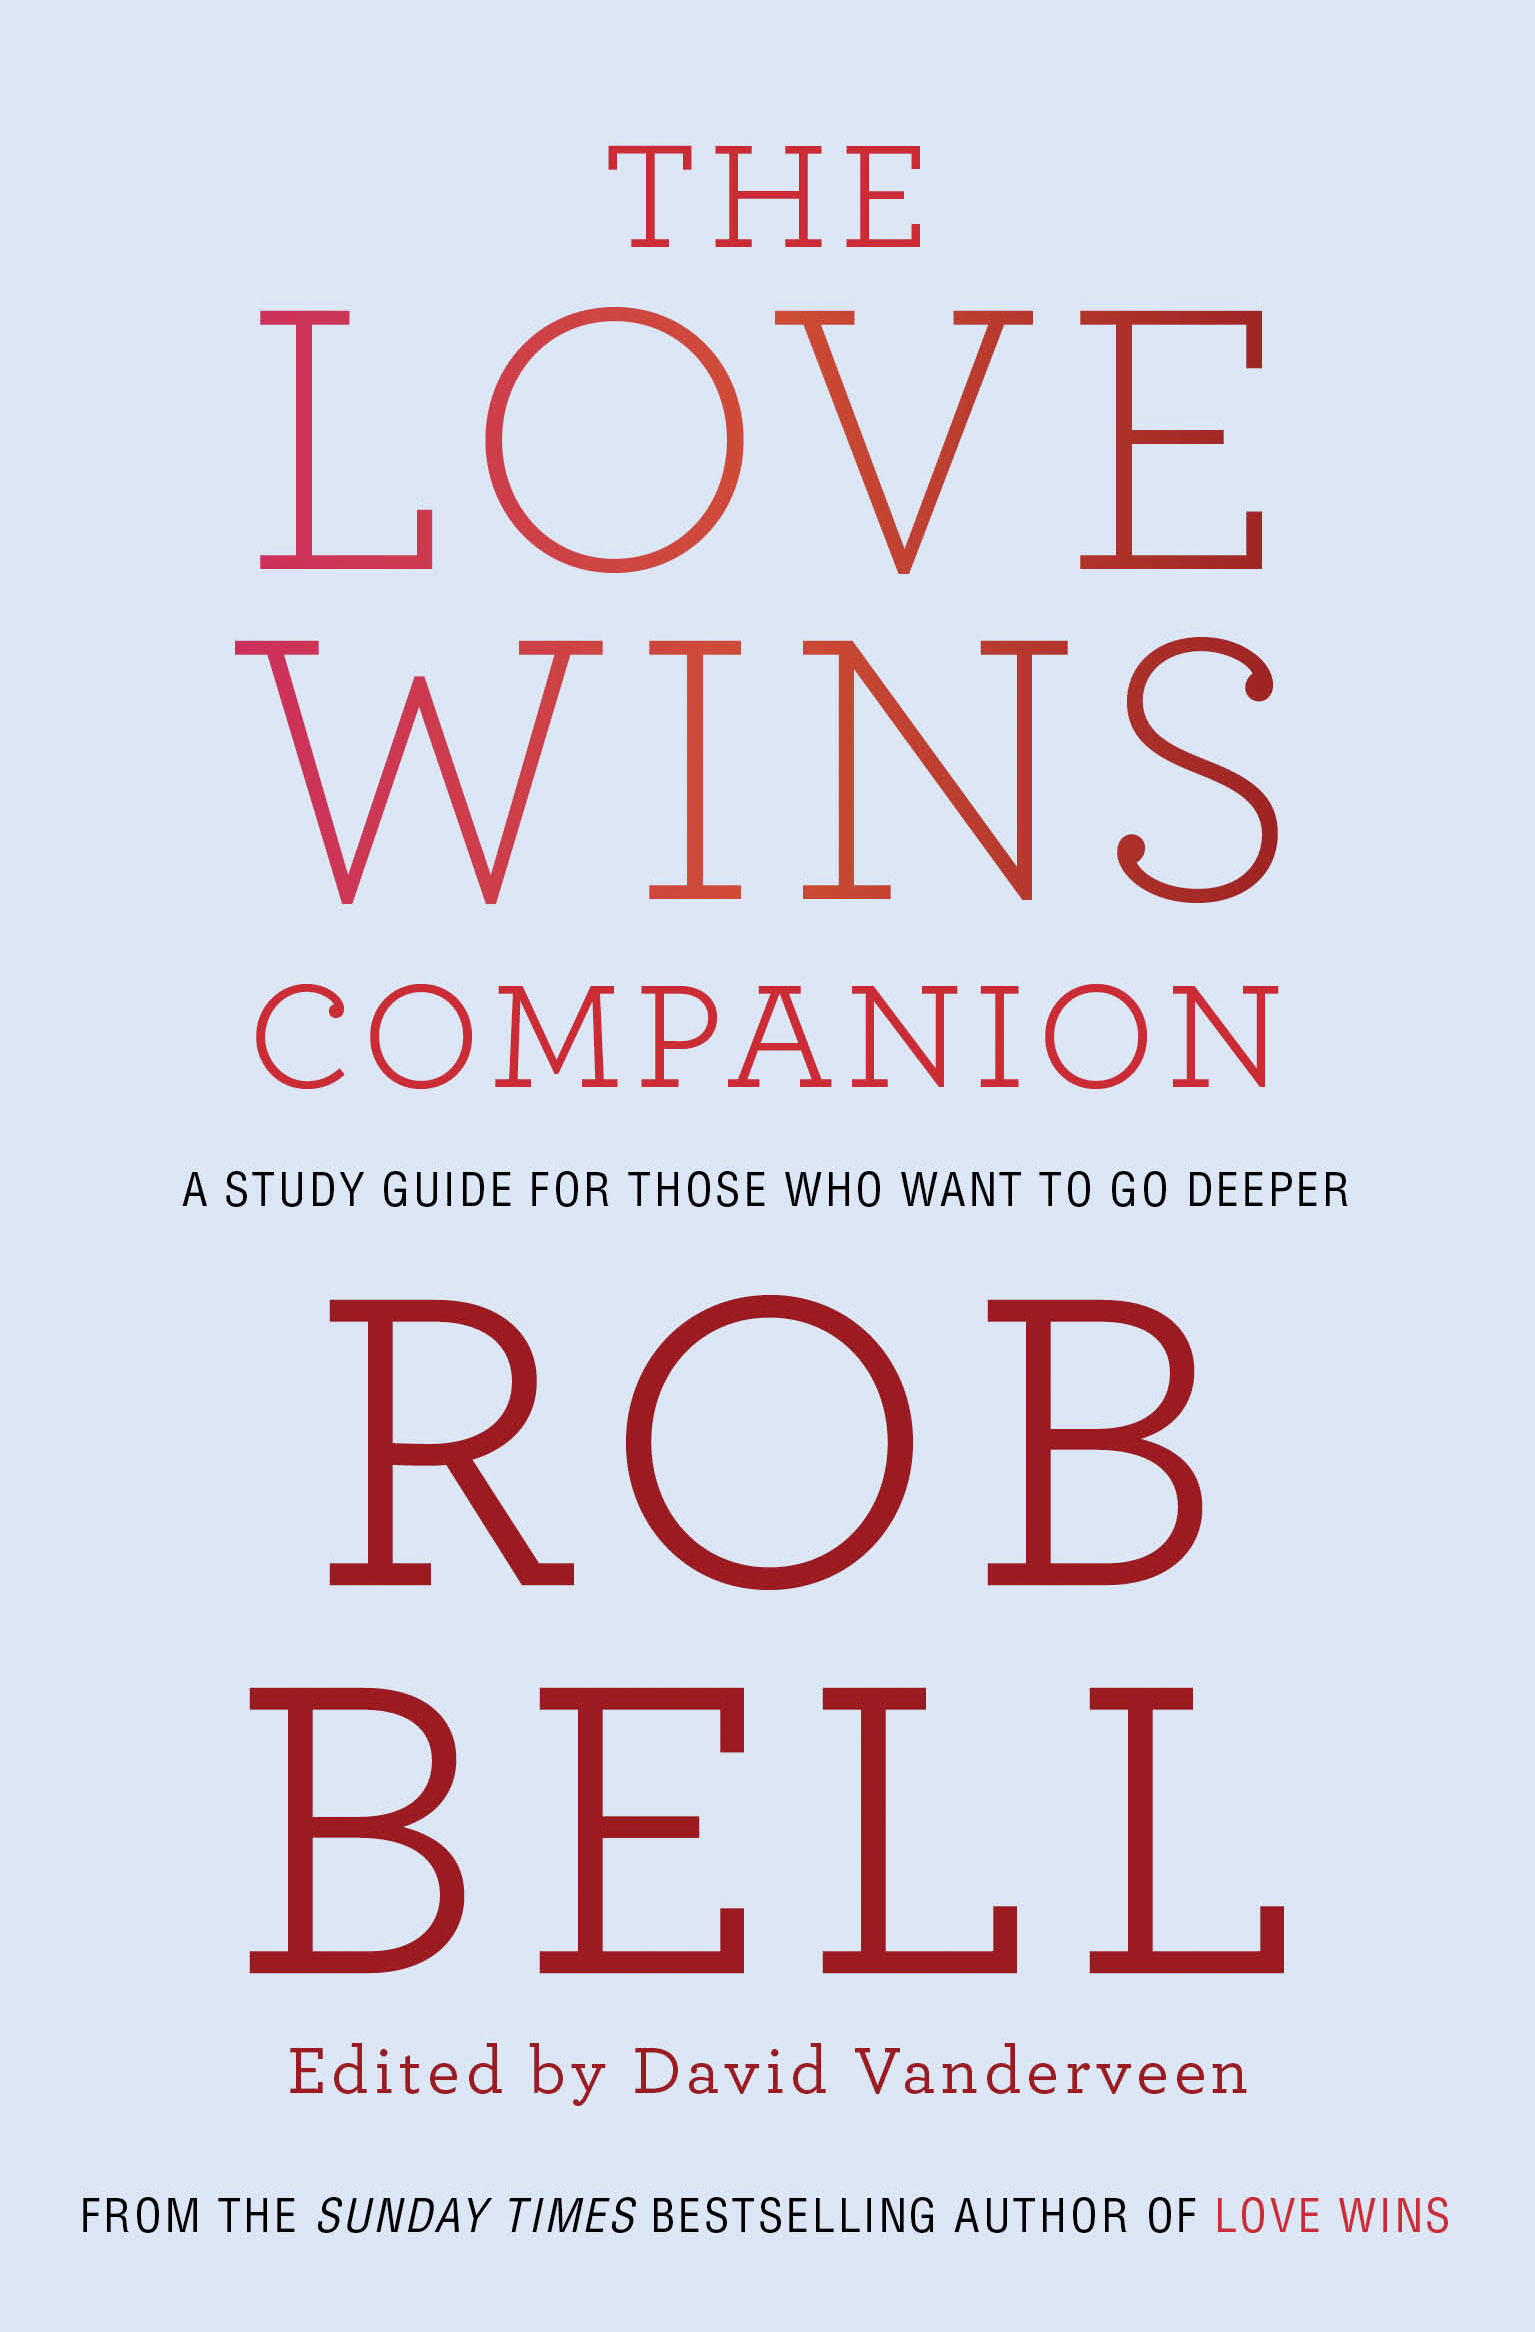 Rob Bell The Love Wins Companion: A Study Guide For Those Who Want to Go Deeper cengage learning gale a study guide for kazuo ishiguro s never let me go